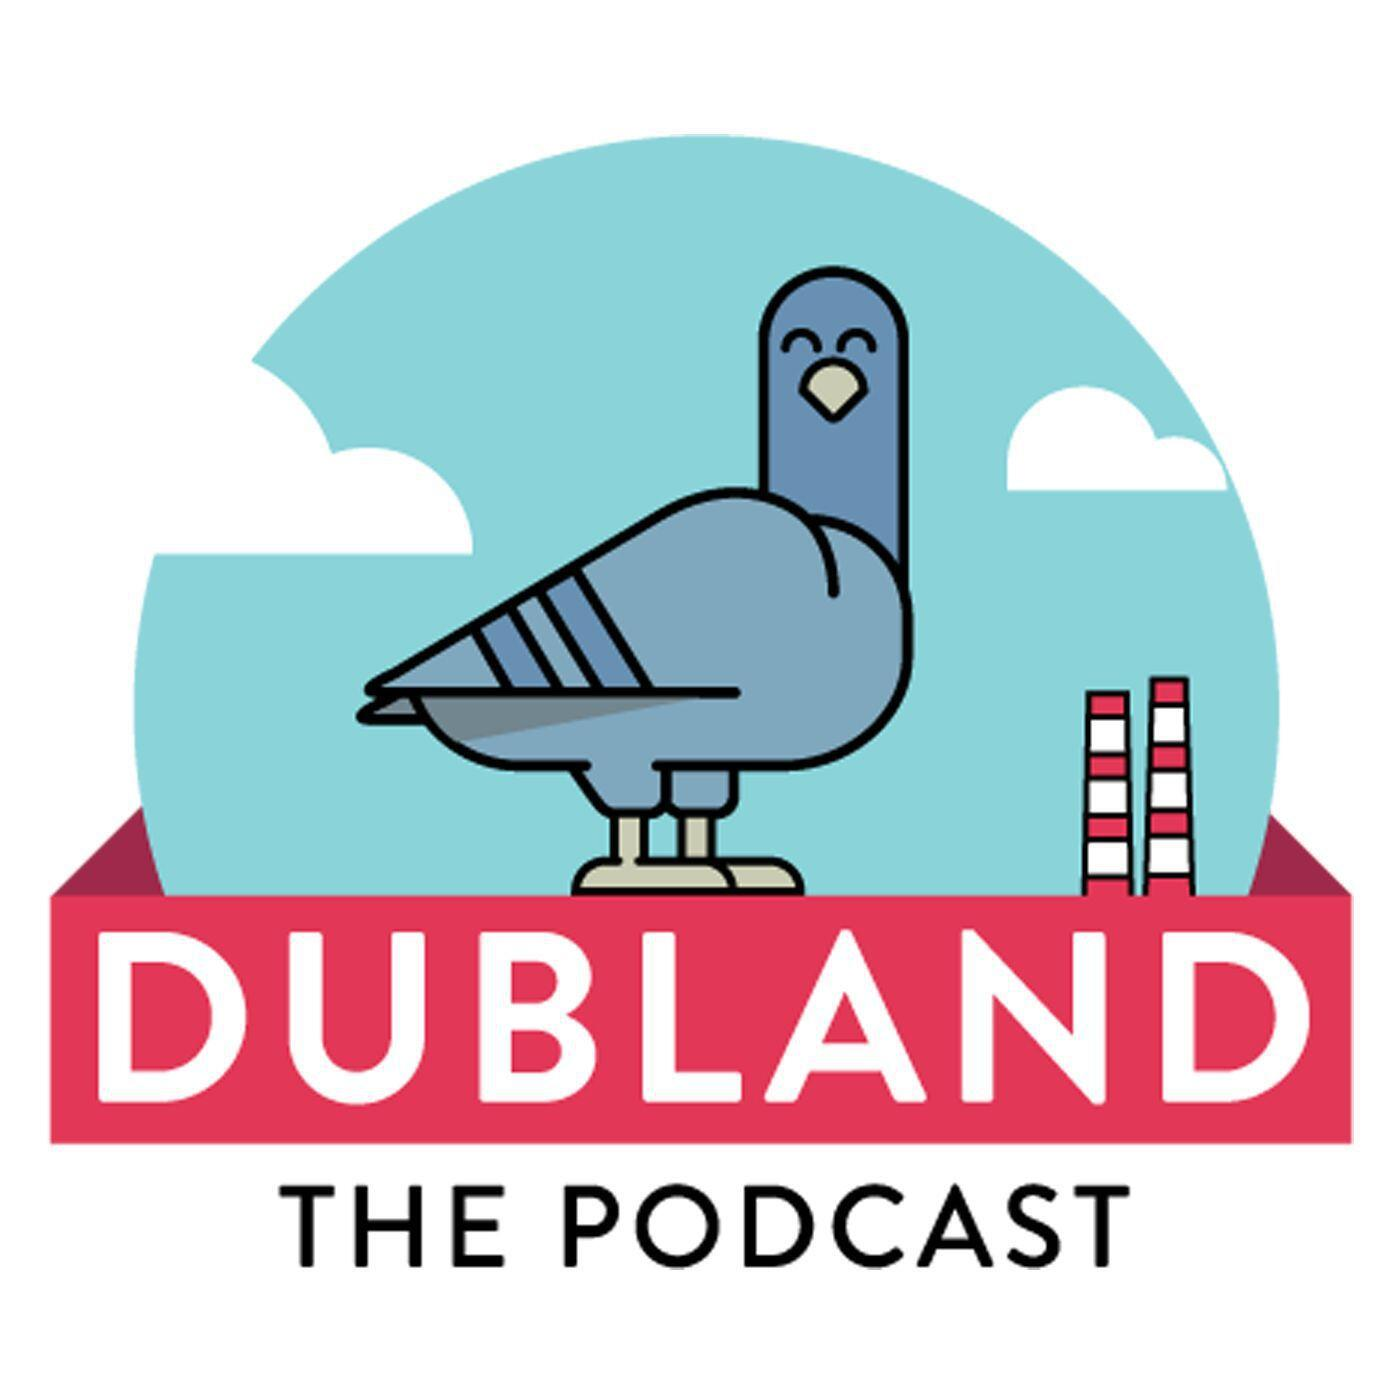 69 DUBLAND The podcast